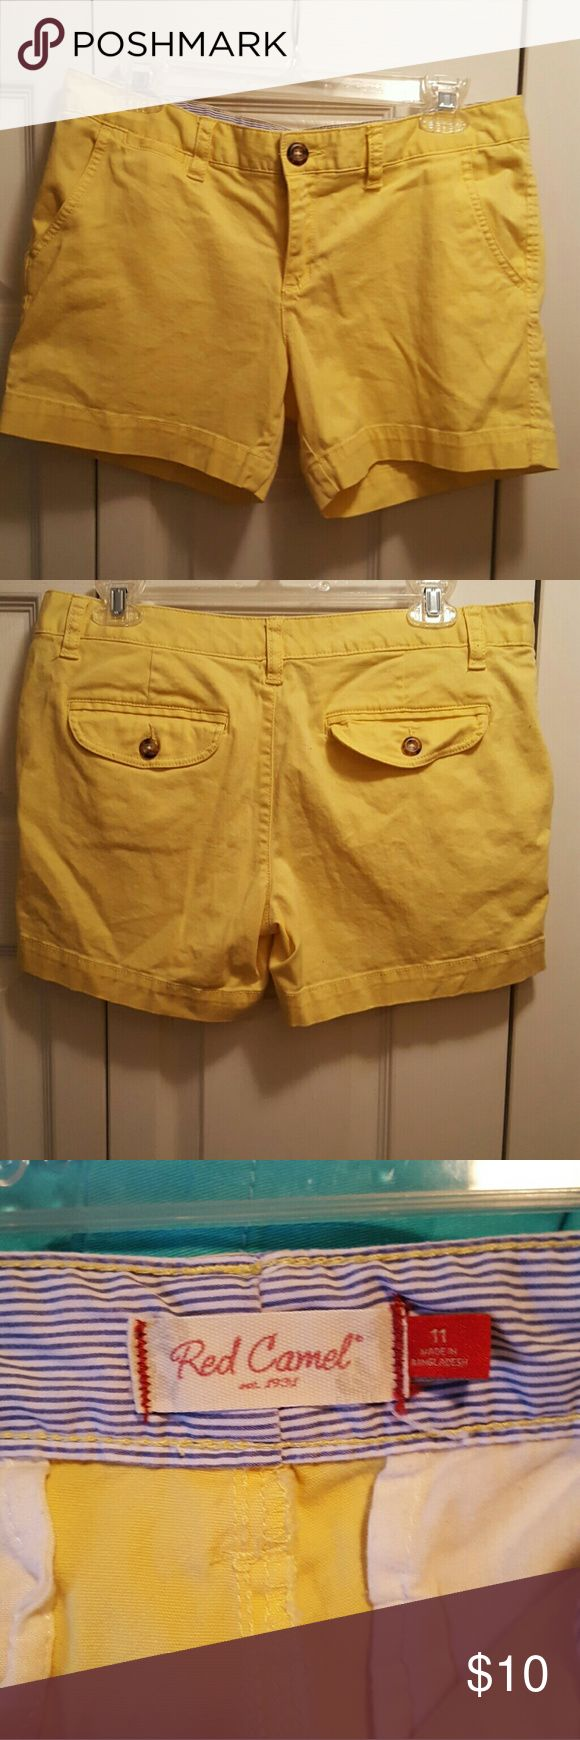 Yellow shorts Yellow Red Camel shorts, cotton Red Camel Shorts